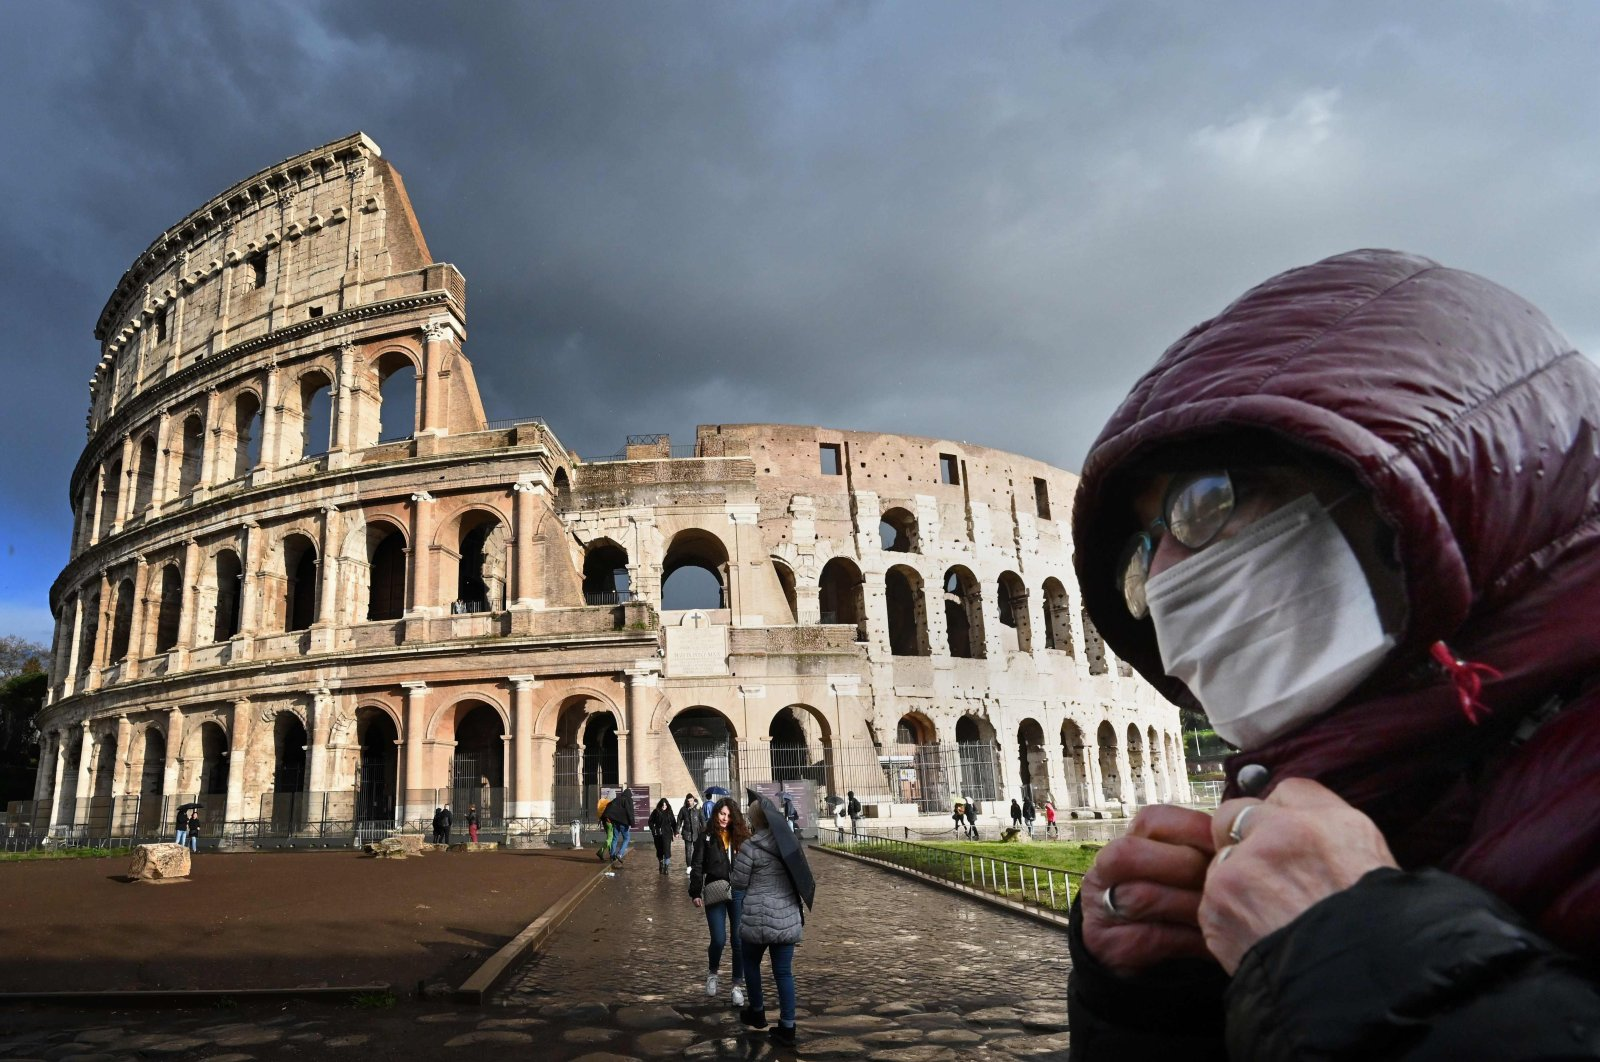 A man wearing a protective mask passes by the Coliseum monument in Rome amid fear of the Covid-19 pandemic, March 07, 2020. (AFP)